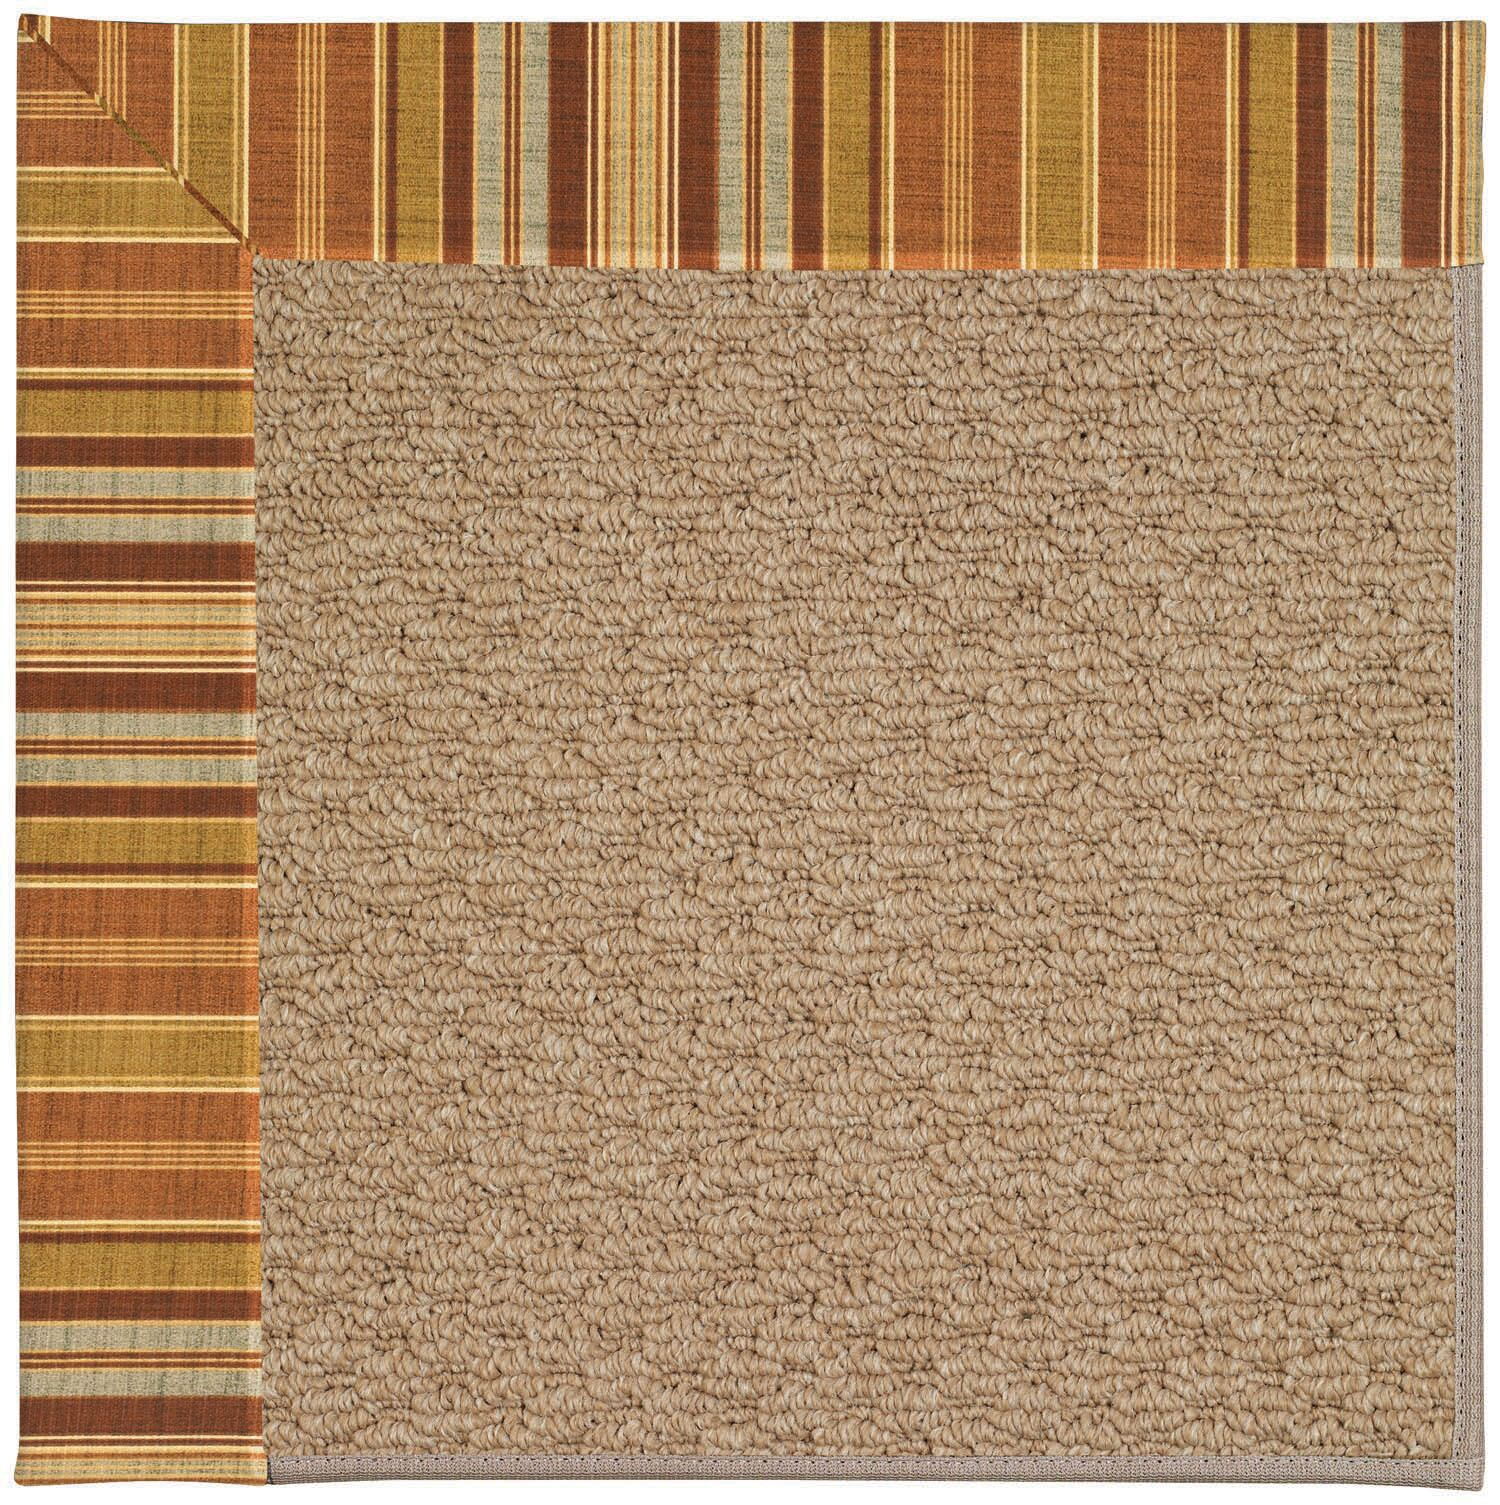 Lisle Machine Tufted Button Mushroom/Brown Indoor/Outdoor Area Rug Rug Size: Rectangle 7' x 9'